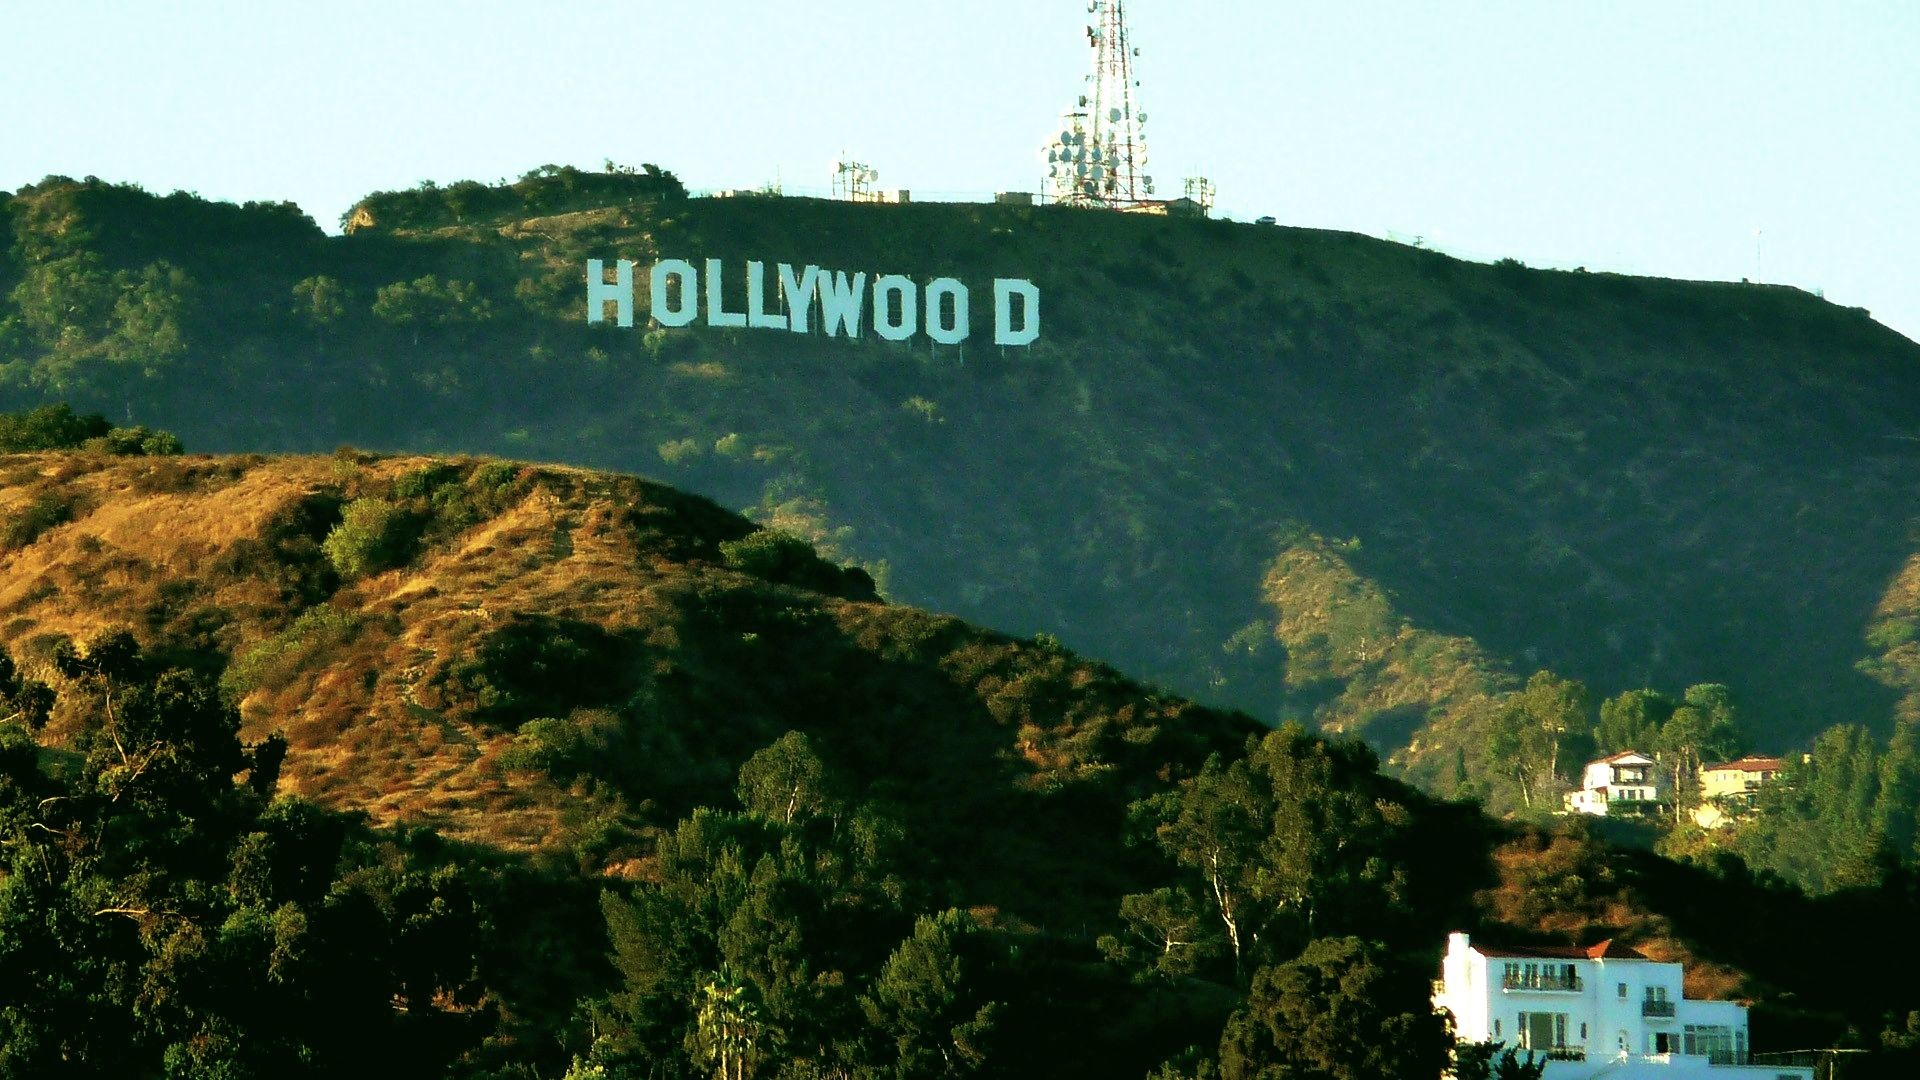 Los Angeles Wallpaper Iphone 6 Plus Hollywood Sign Wallpapers 59 Images